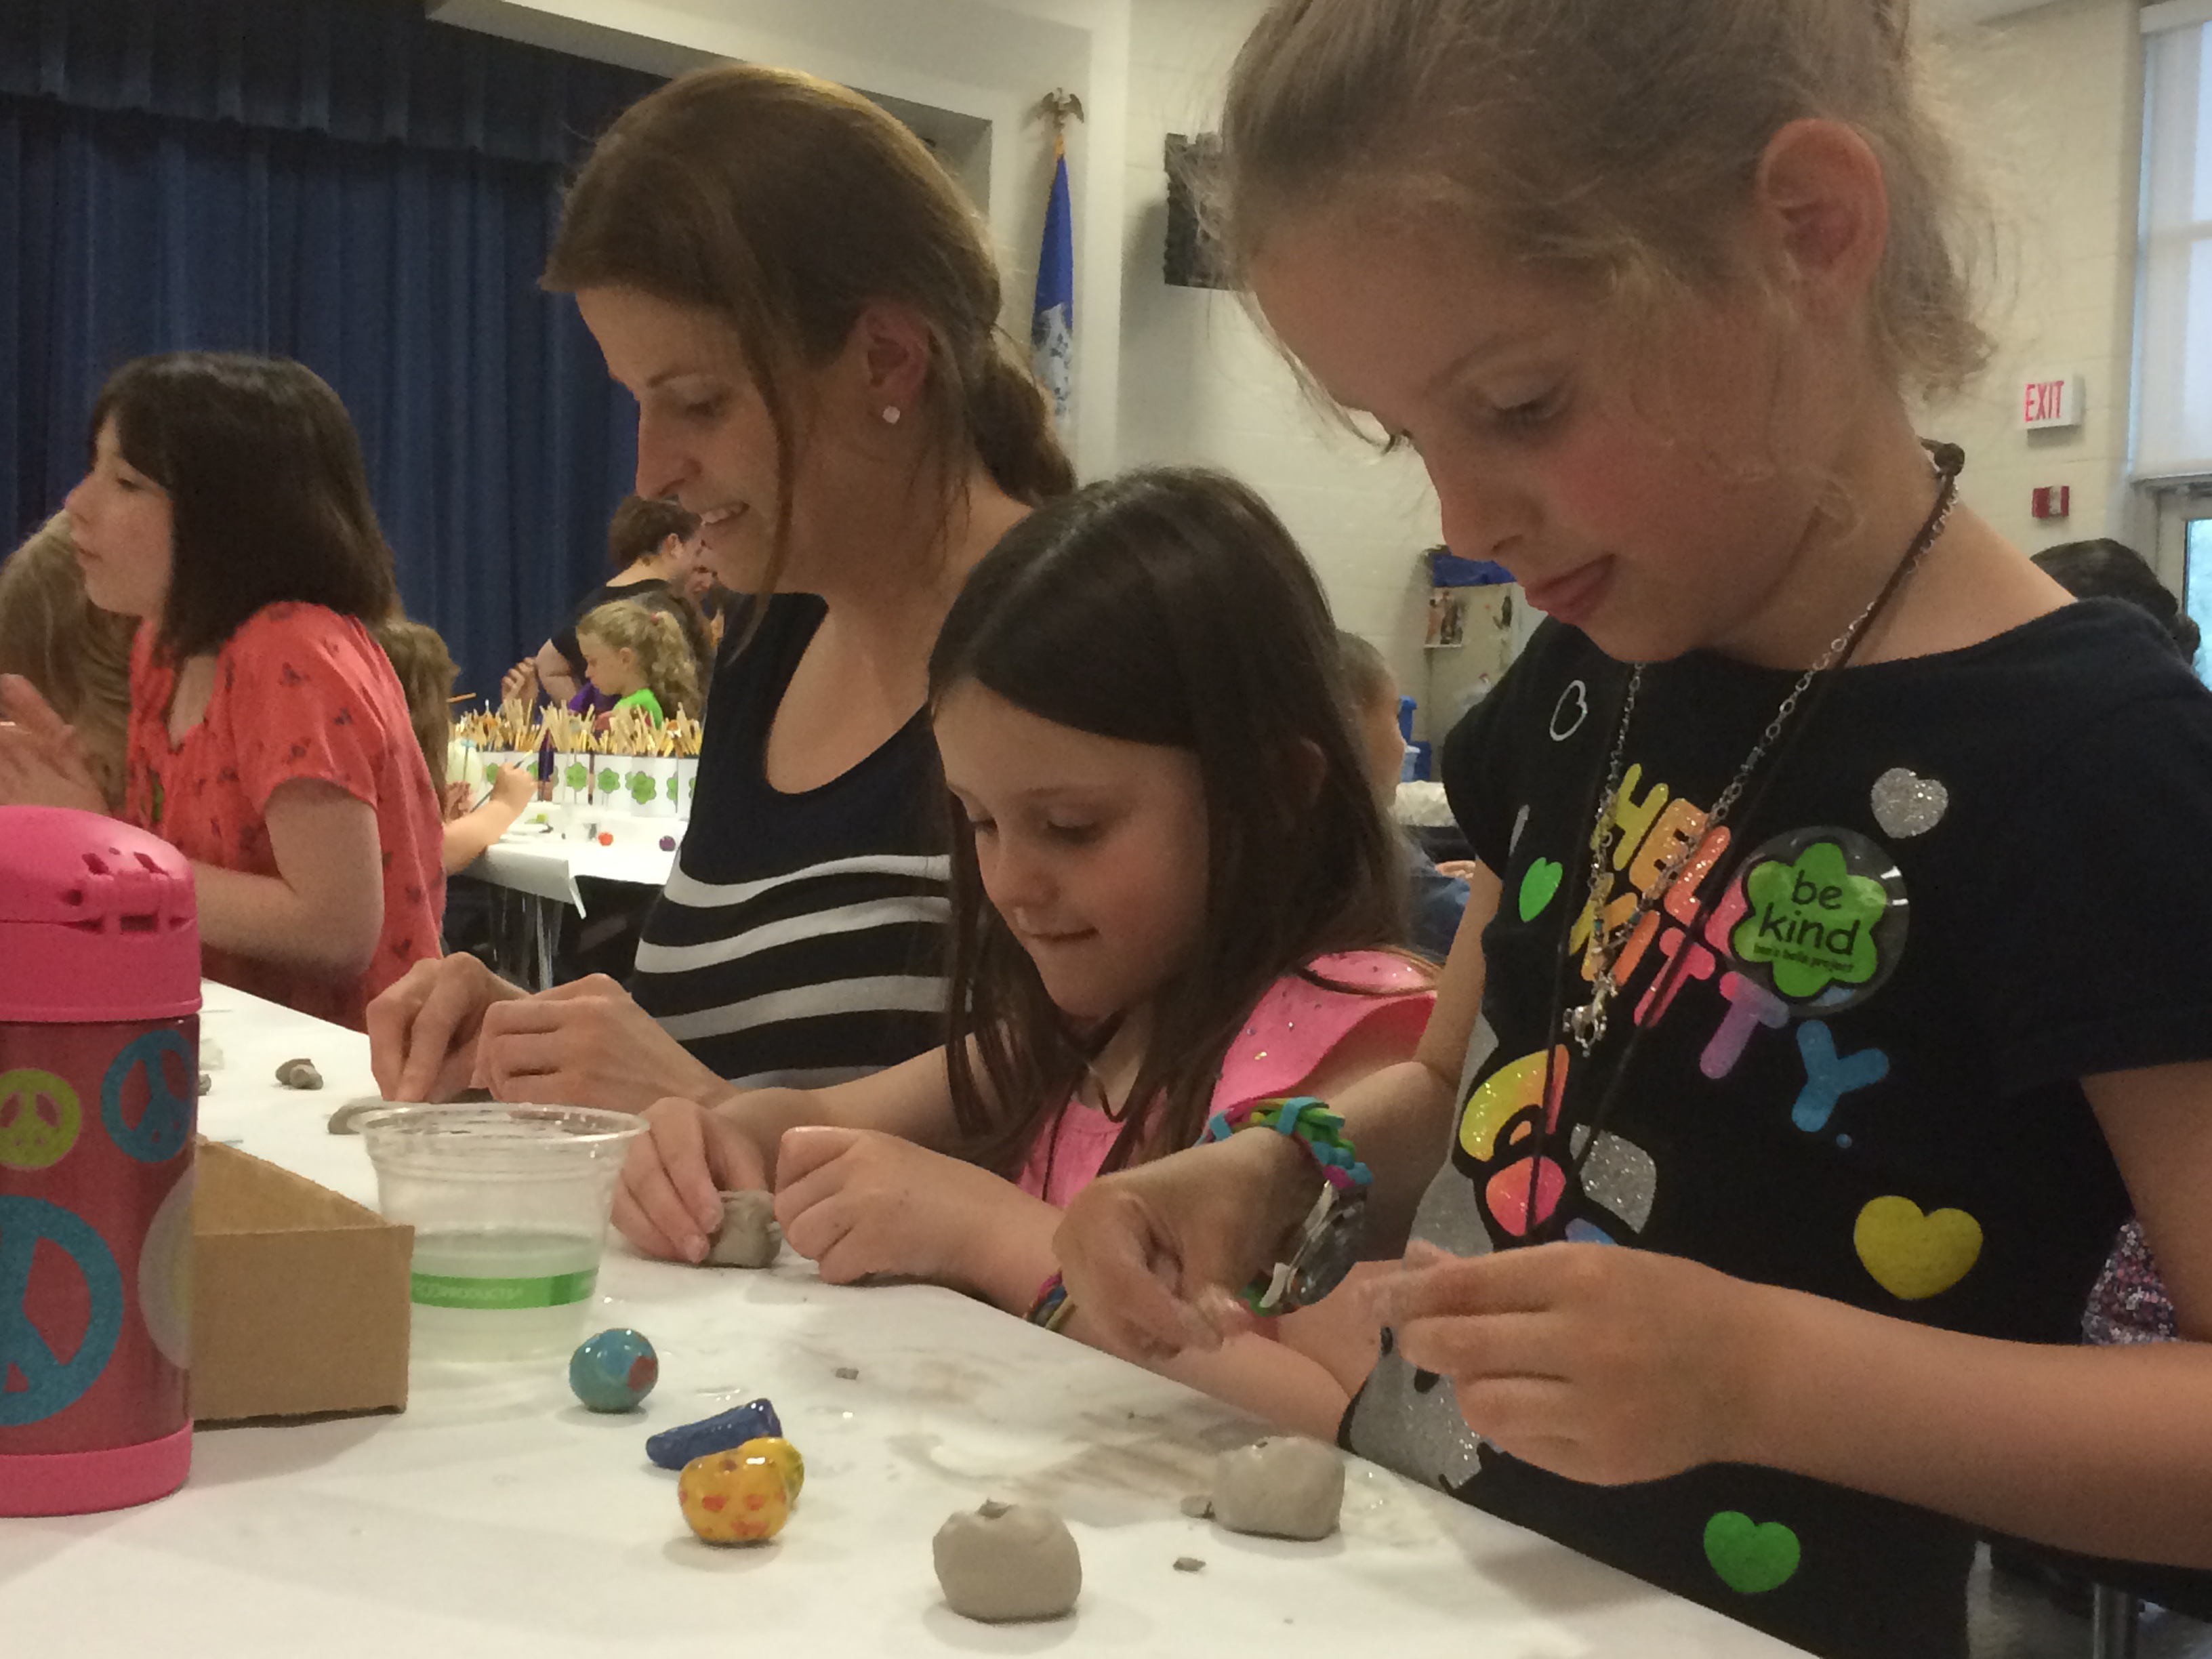 From left to right, Monika Paszkowski, Emmersyn Ceruti, and Adriana Paszkowski, both kindergarteners a Hatton School, worked on forming shapes with a ball of clay on Friday, May 16 during family night at Hatton School. | (Farrah Duffany/ Record-Journal staff).